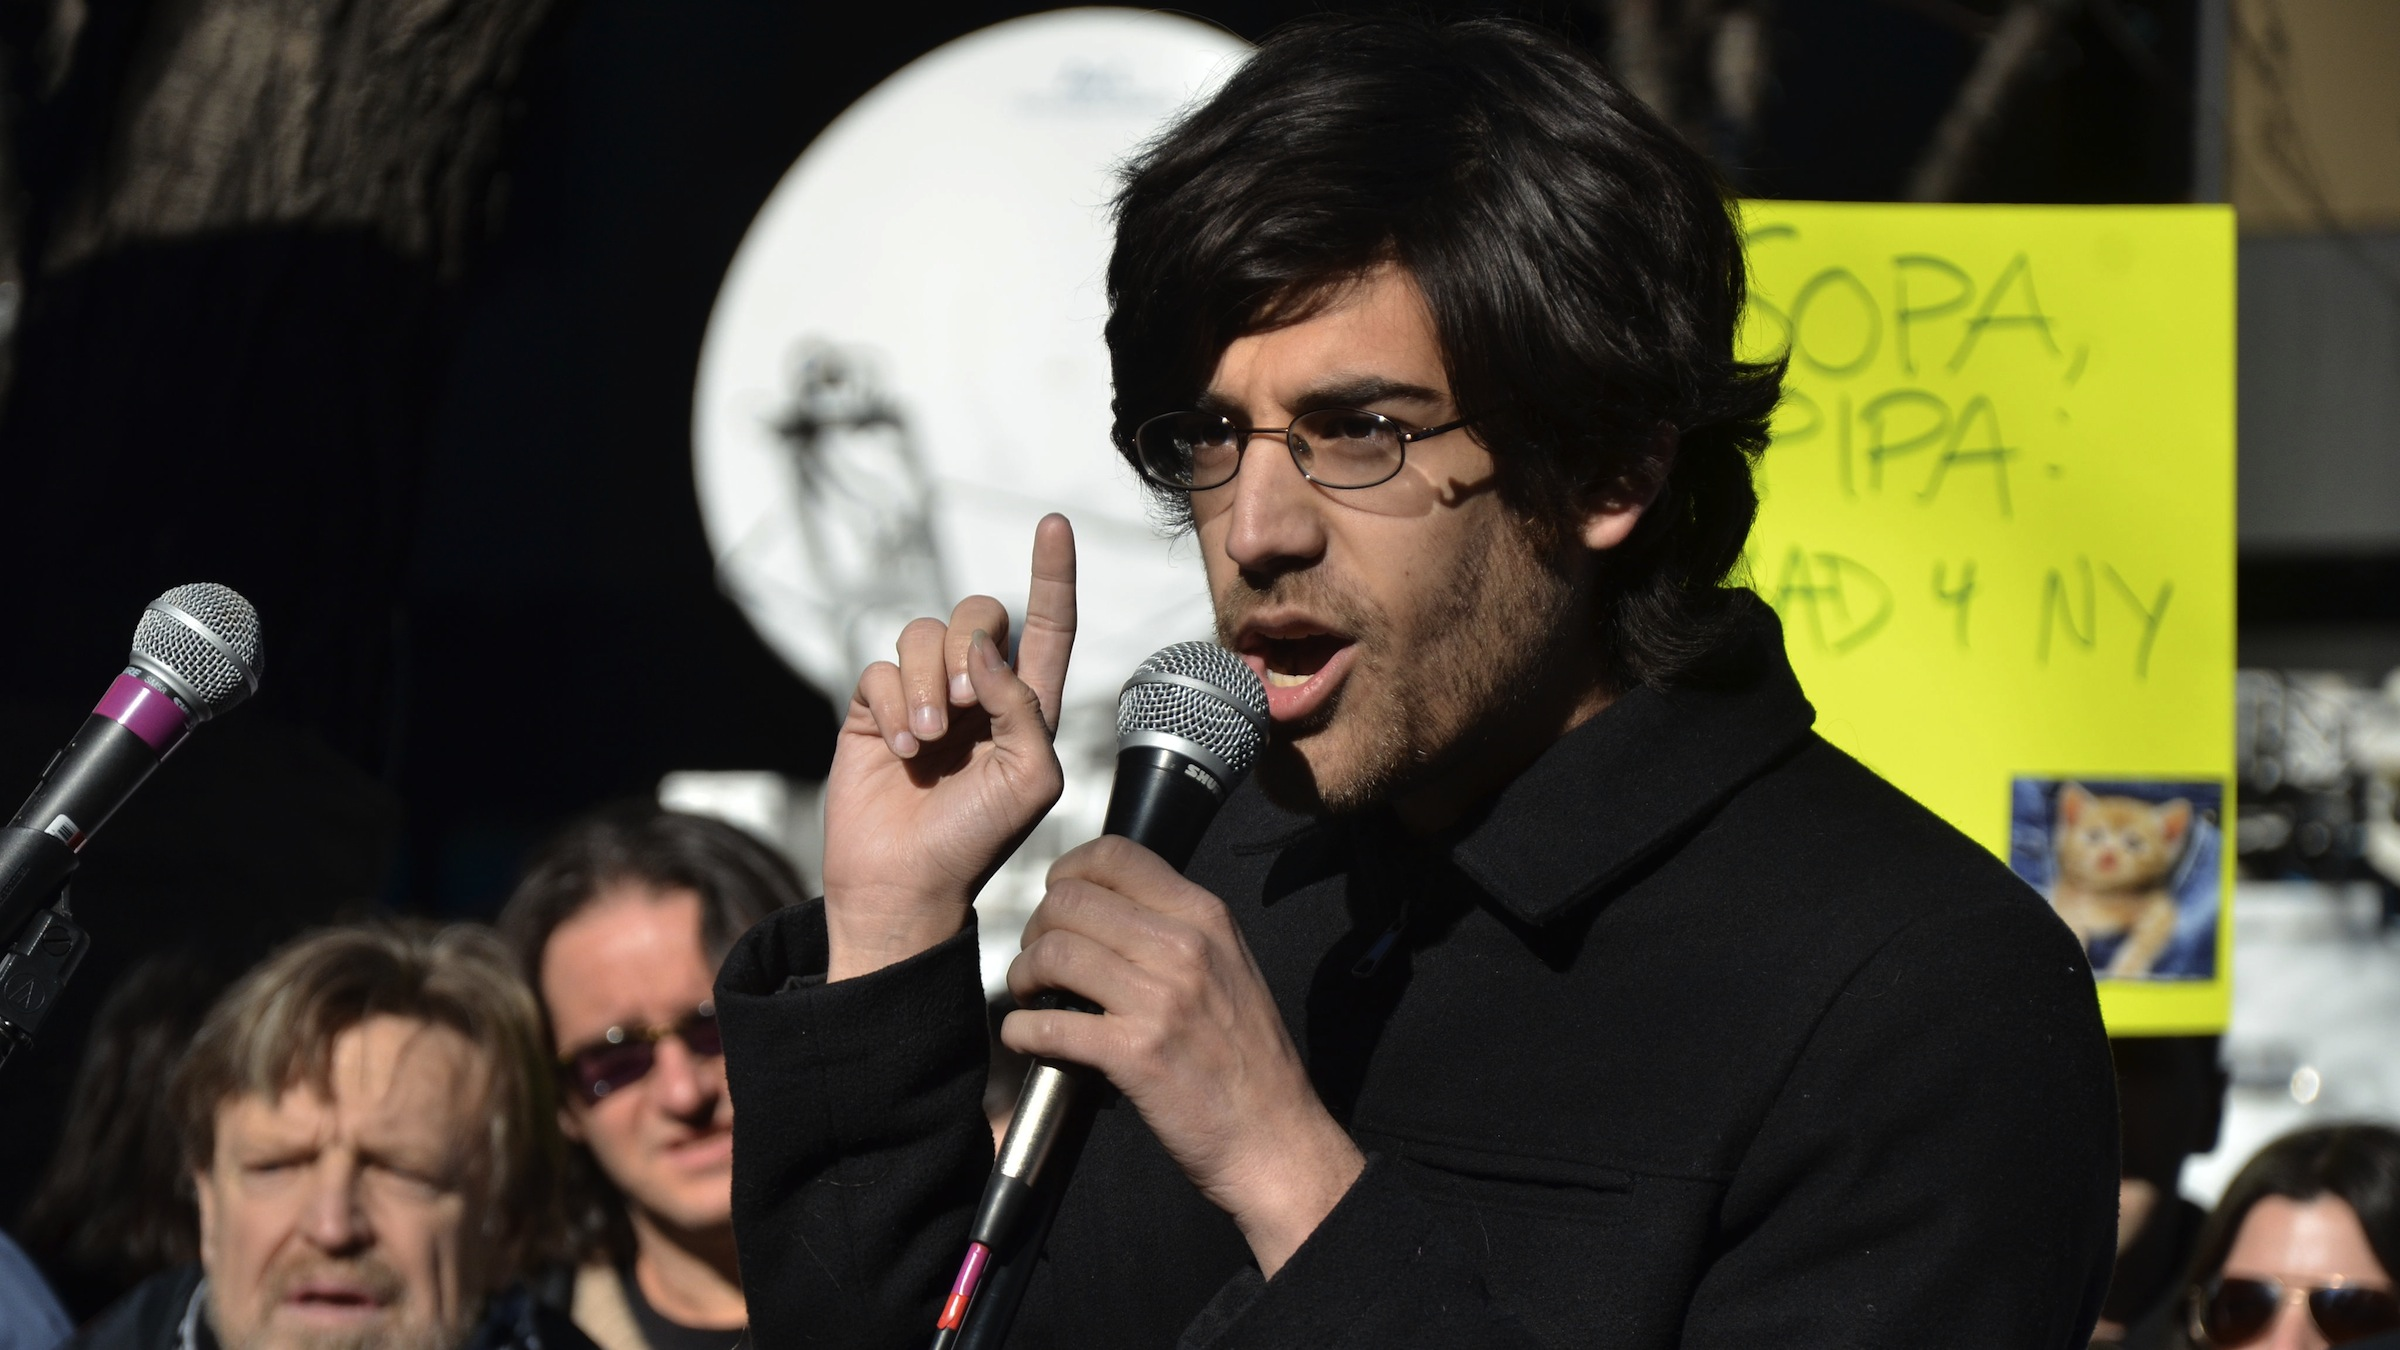 Aaron Swartz speaking at a rally against the Stop Online Piracy Act (SOPA) in January 2012.